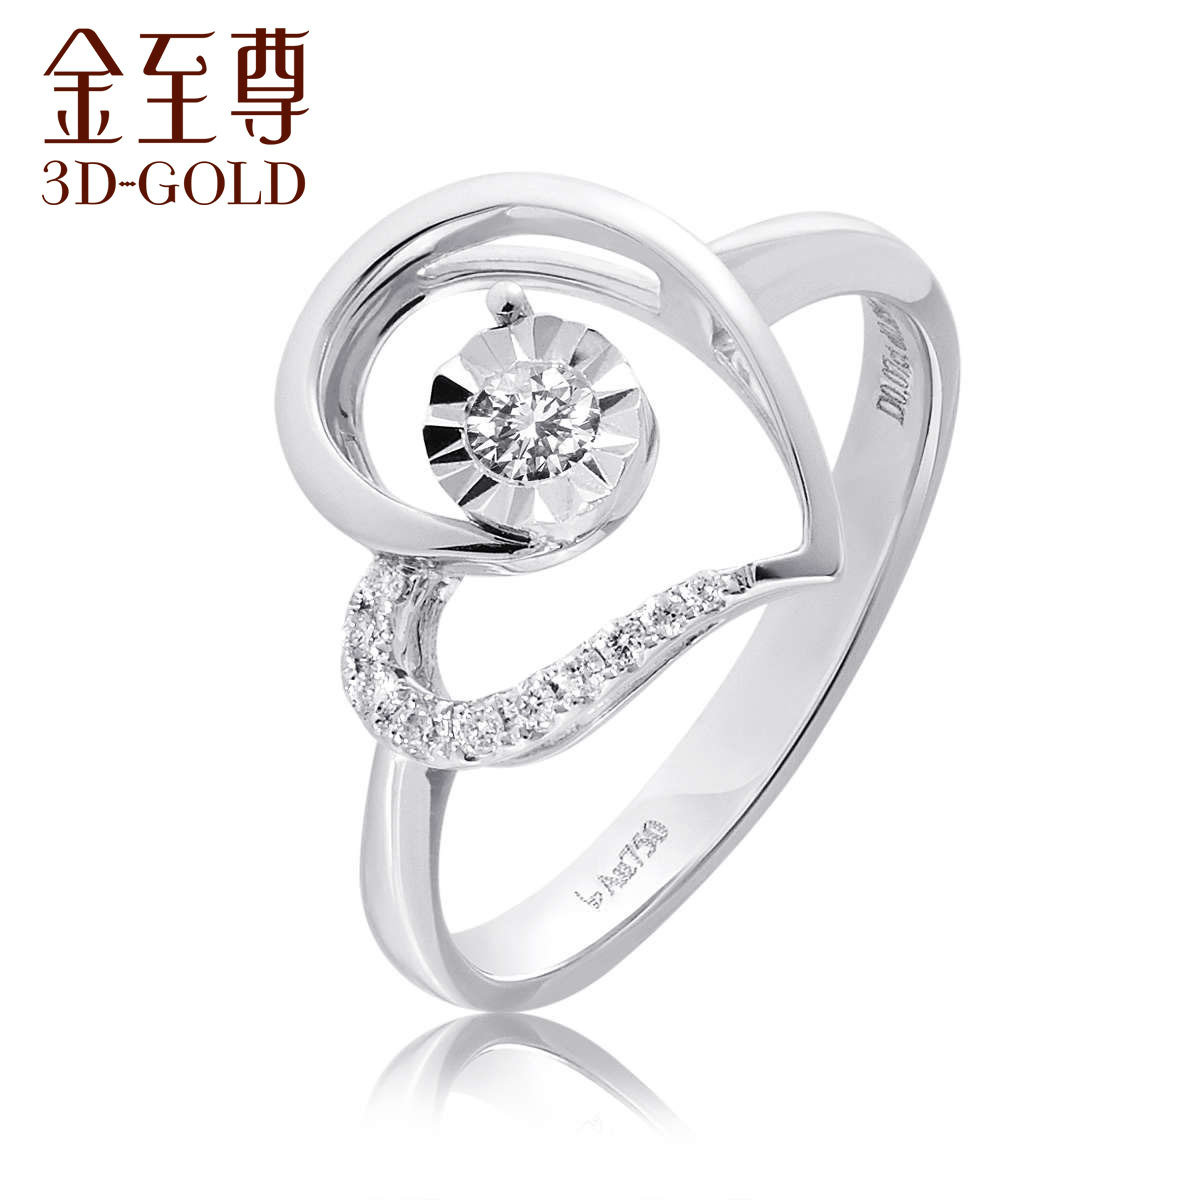 18K White Gold with Diamond Ring